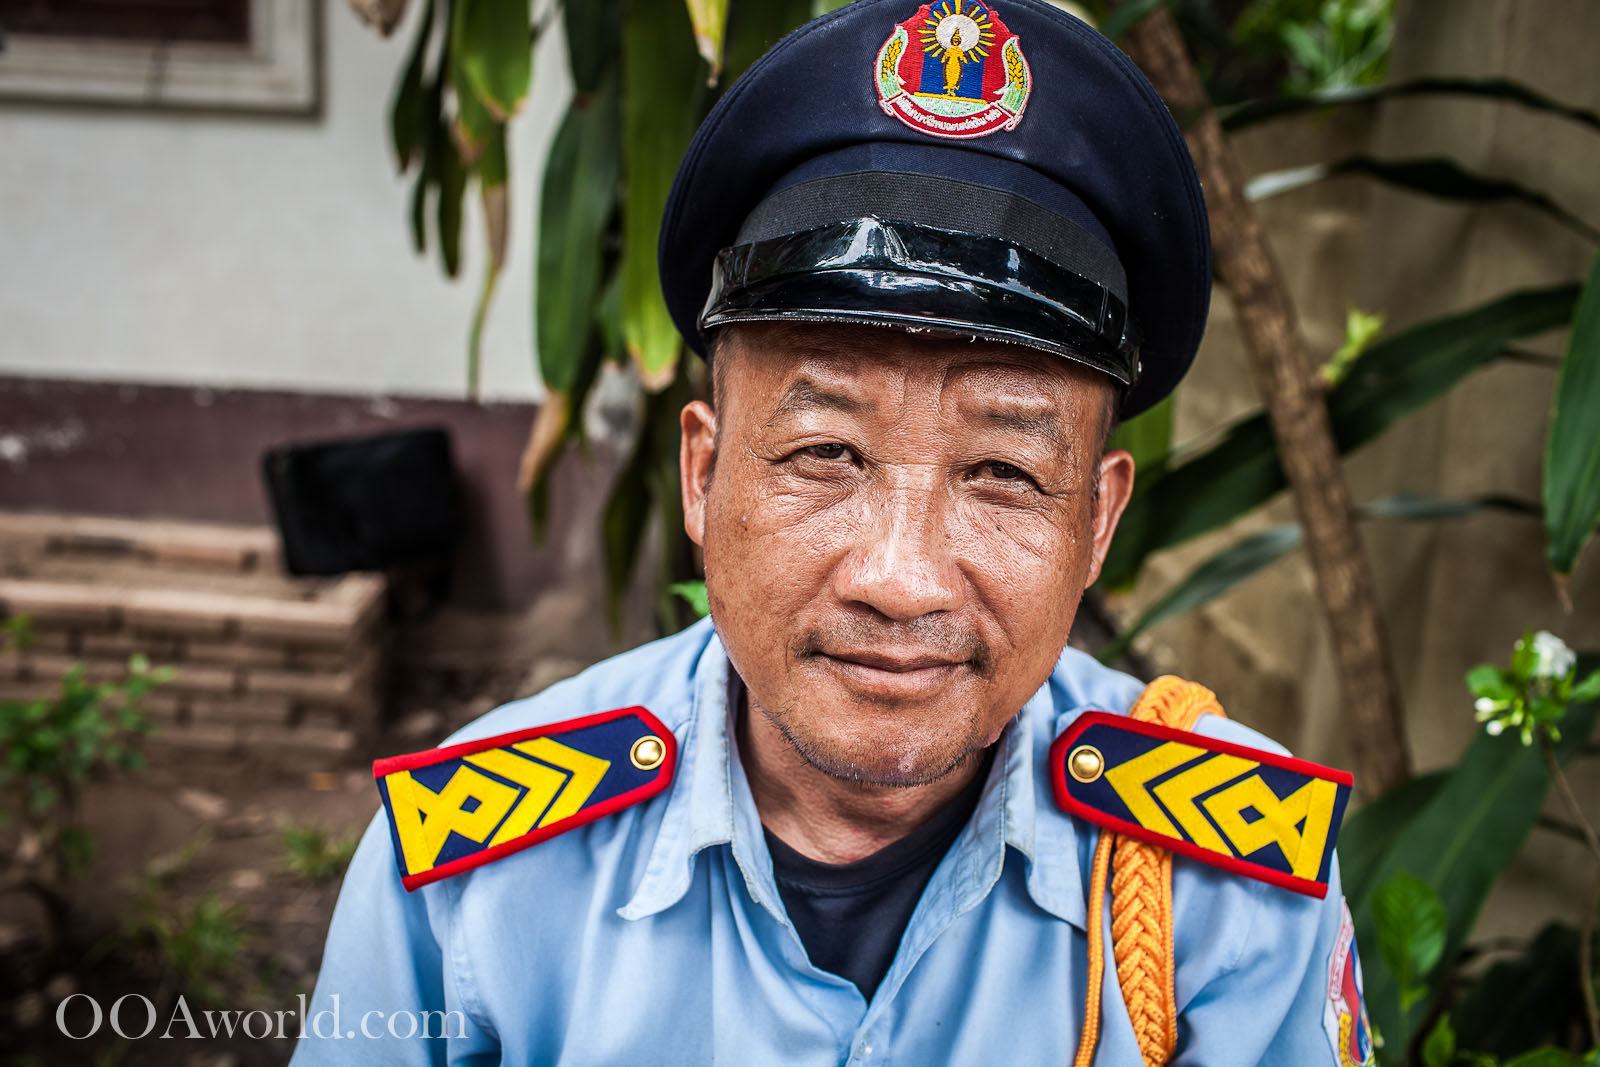 Luang Prabang Photos Police Officer Photo Ooaworld